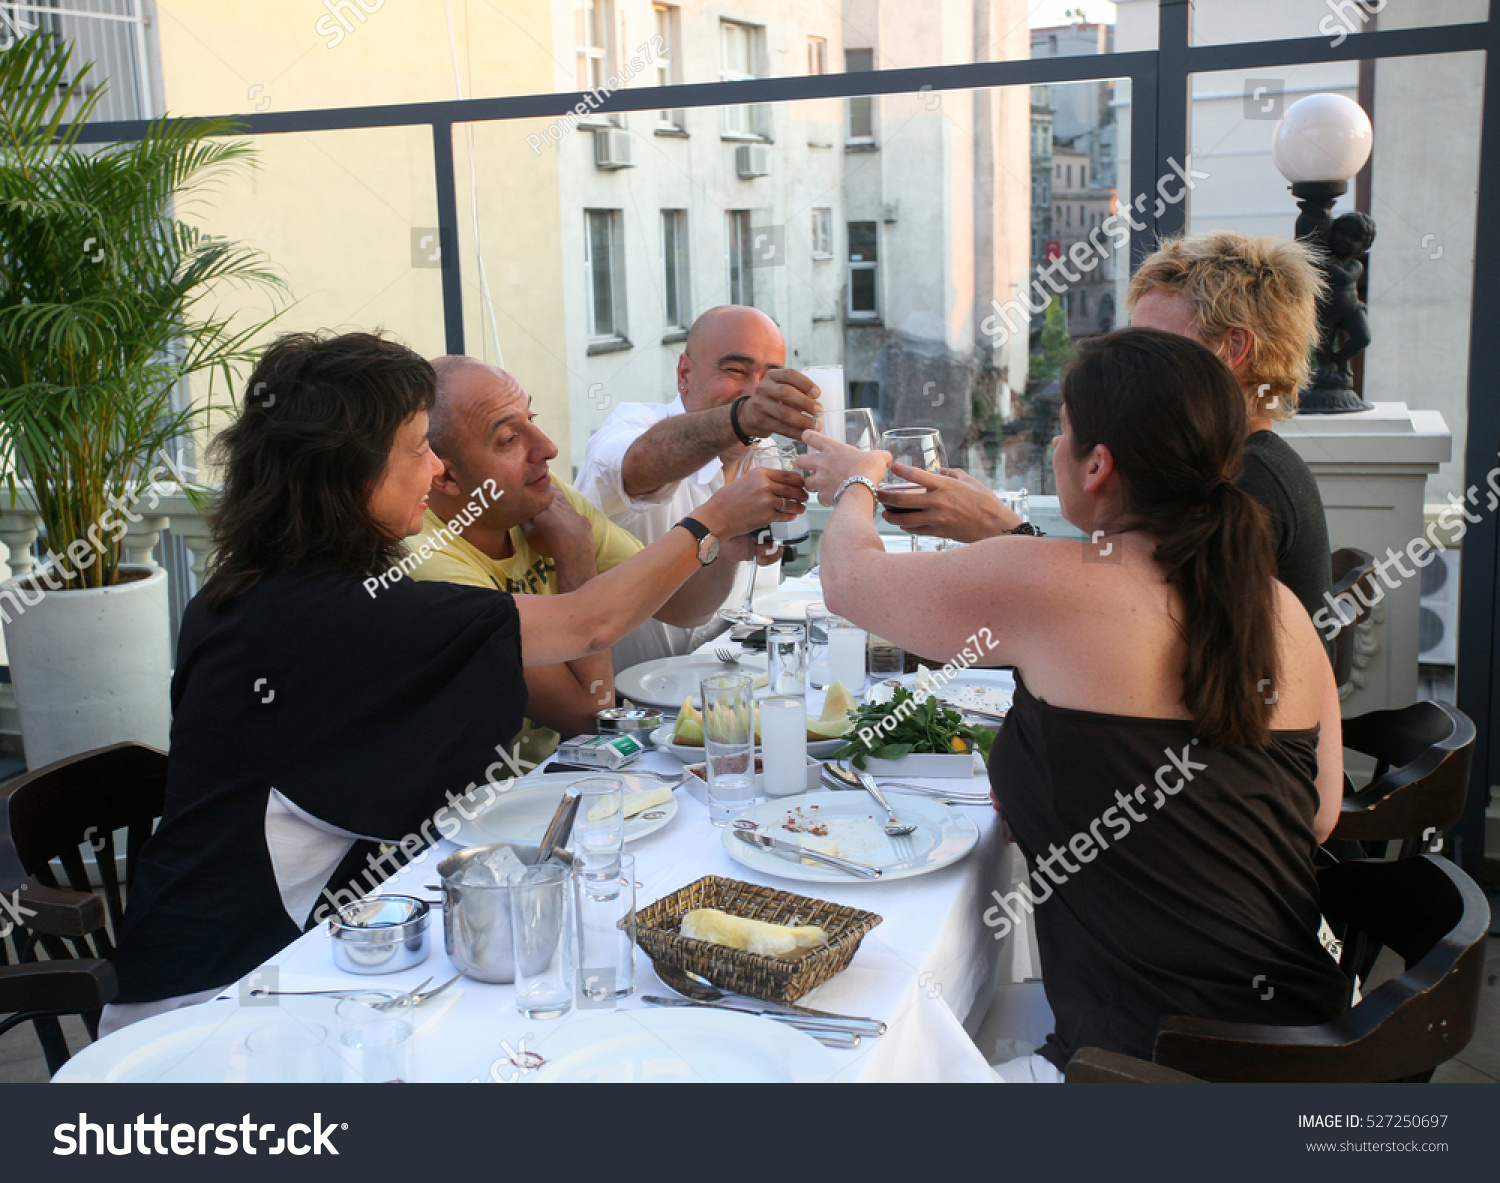 Istanbul turkey july 8 people eating stock photo 527250697 for What do people eat on thanksgiving